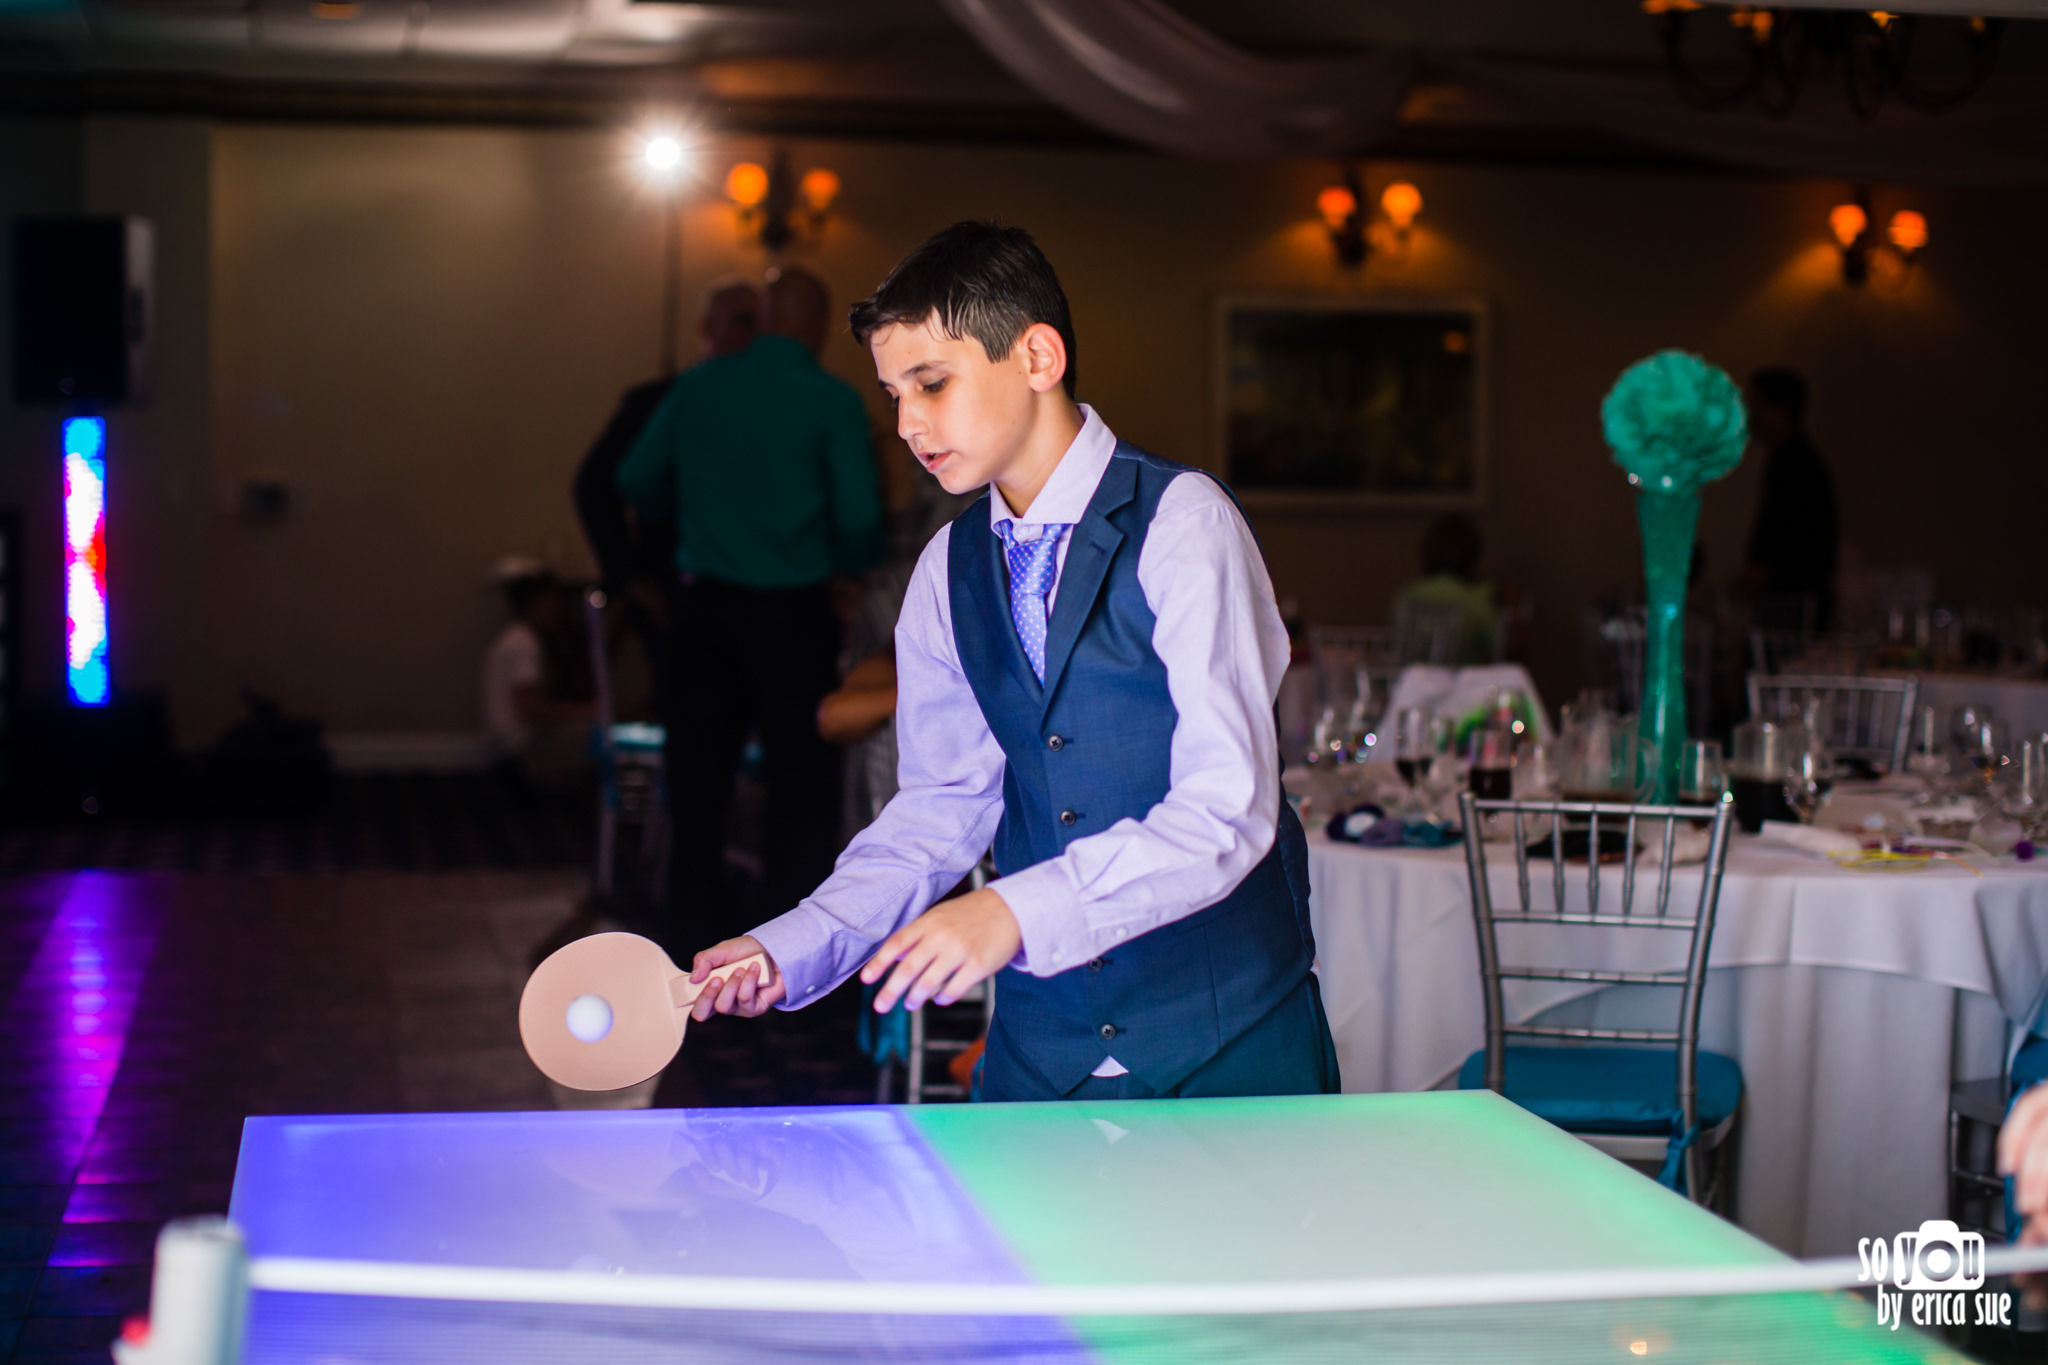 so-you-by-erica-sue-bnai-mitzvah-photographer-delray-beach-golf-club-fl-3773.jpg